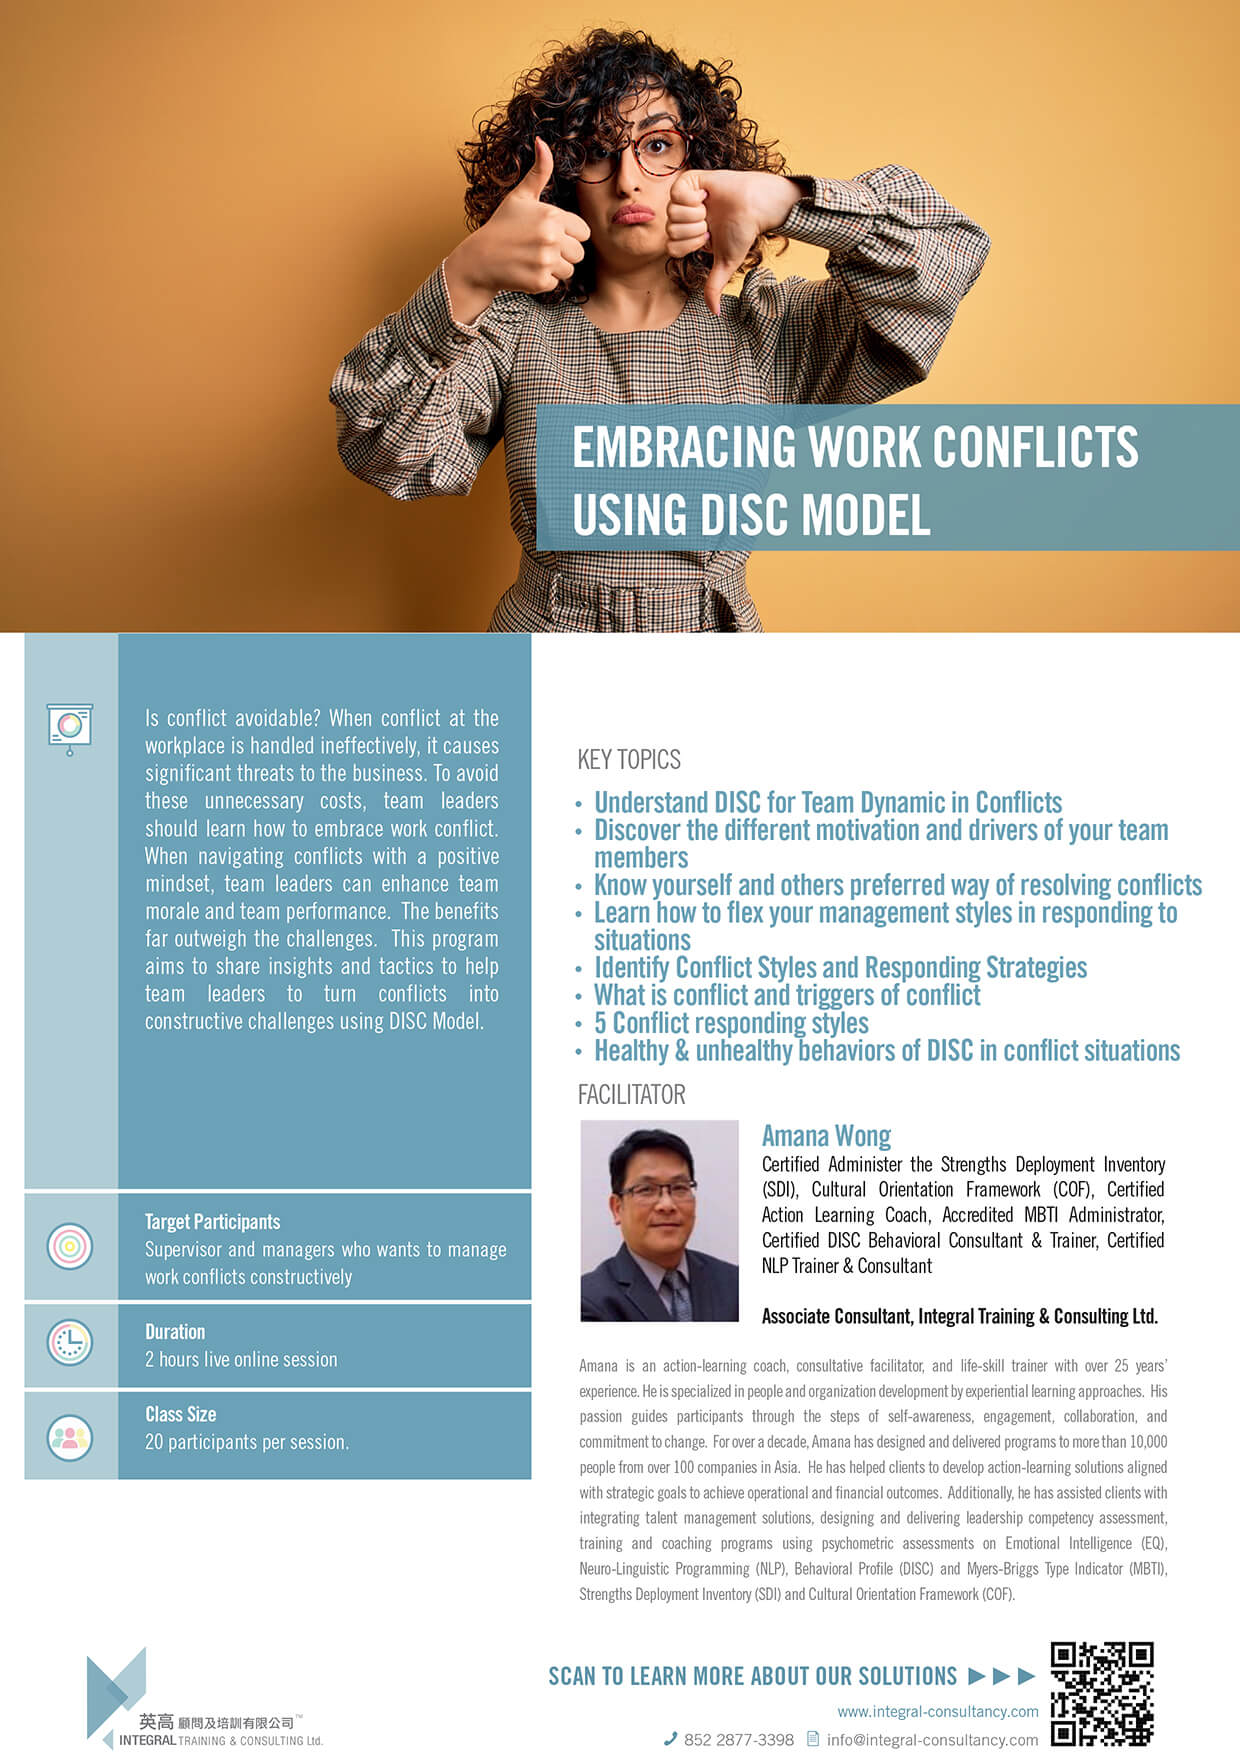 Embracing Work Conflicts using DISC Model